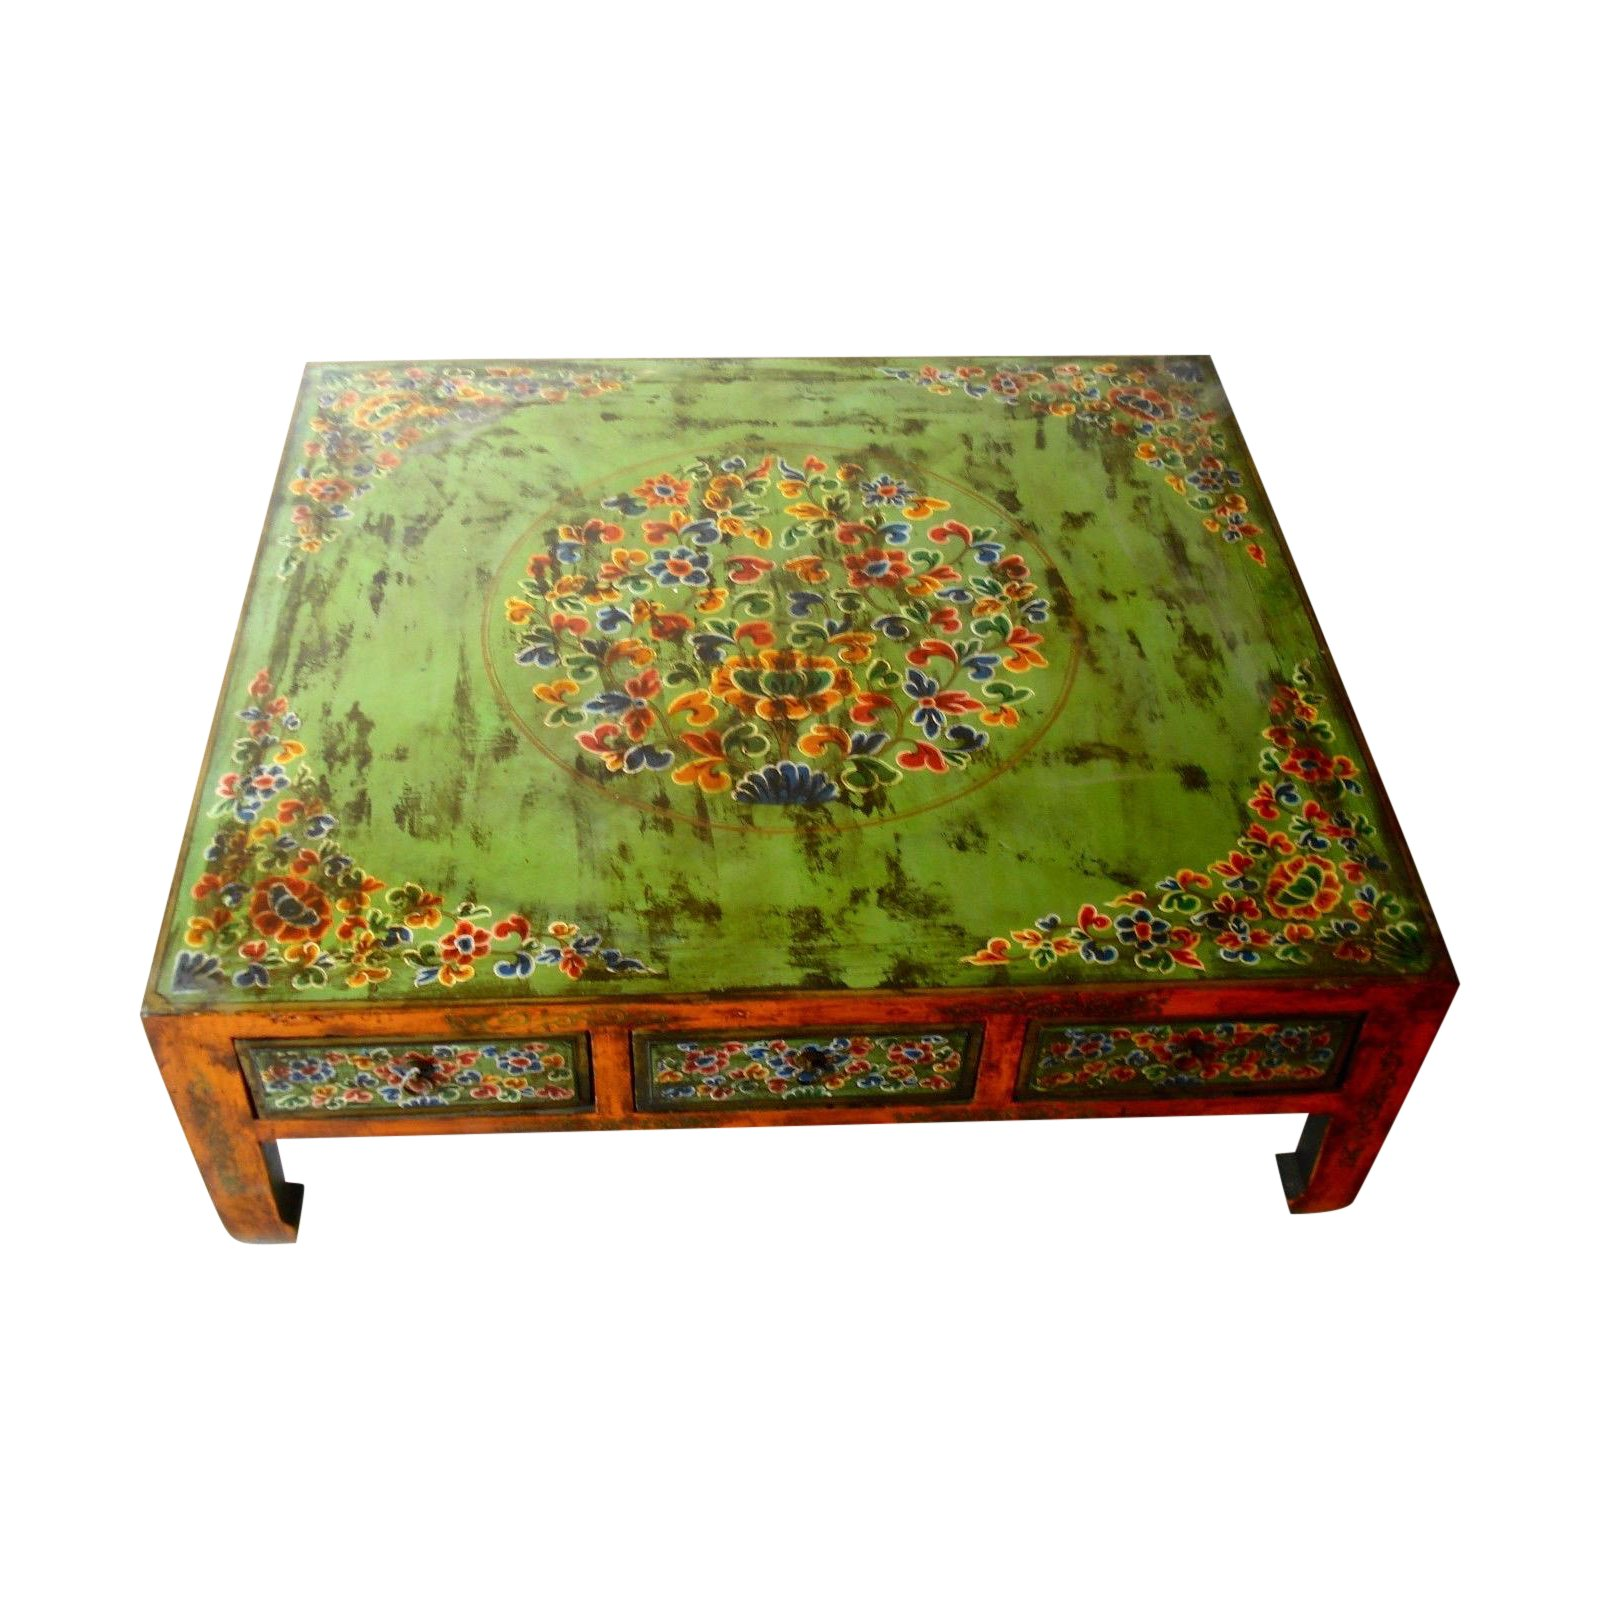 hand painted tibetan coffee table chairish drum accent round white wood basement furniture small farm hairpin legs metal end tables target threshold gold wine rack holder dog bath